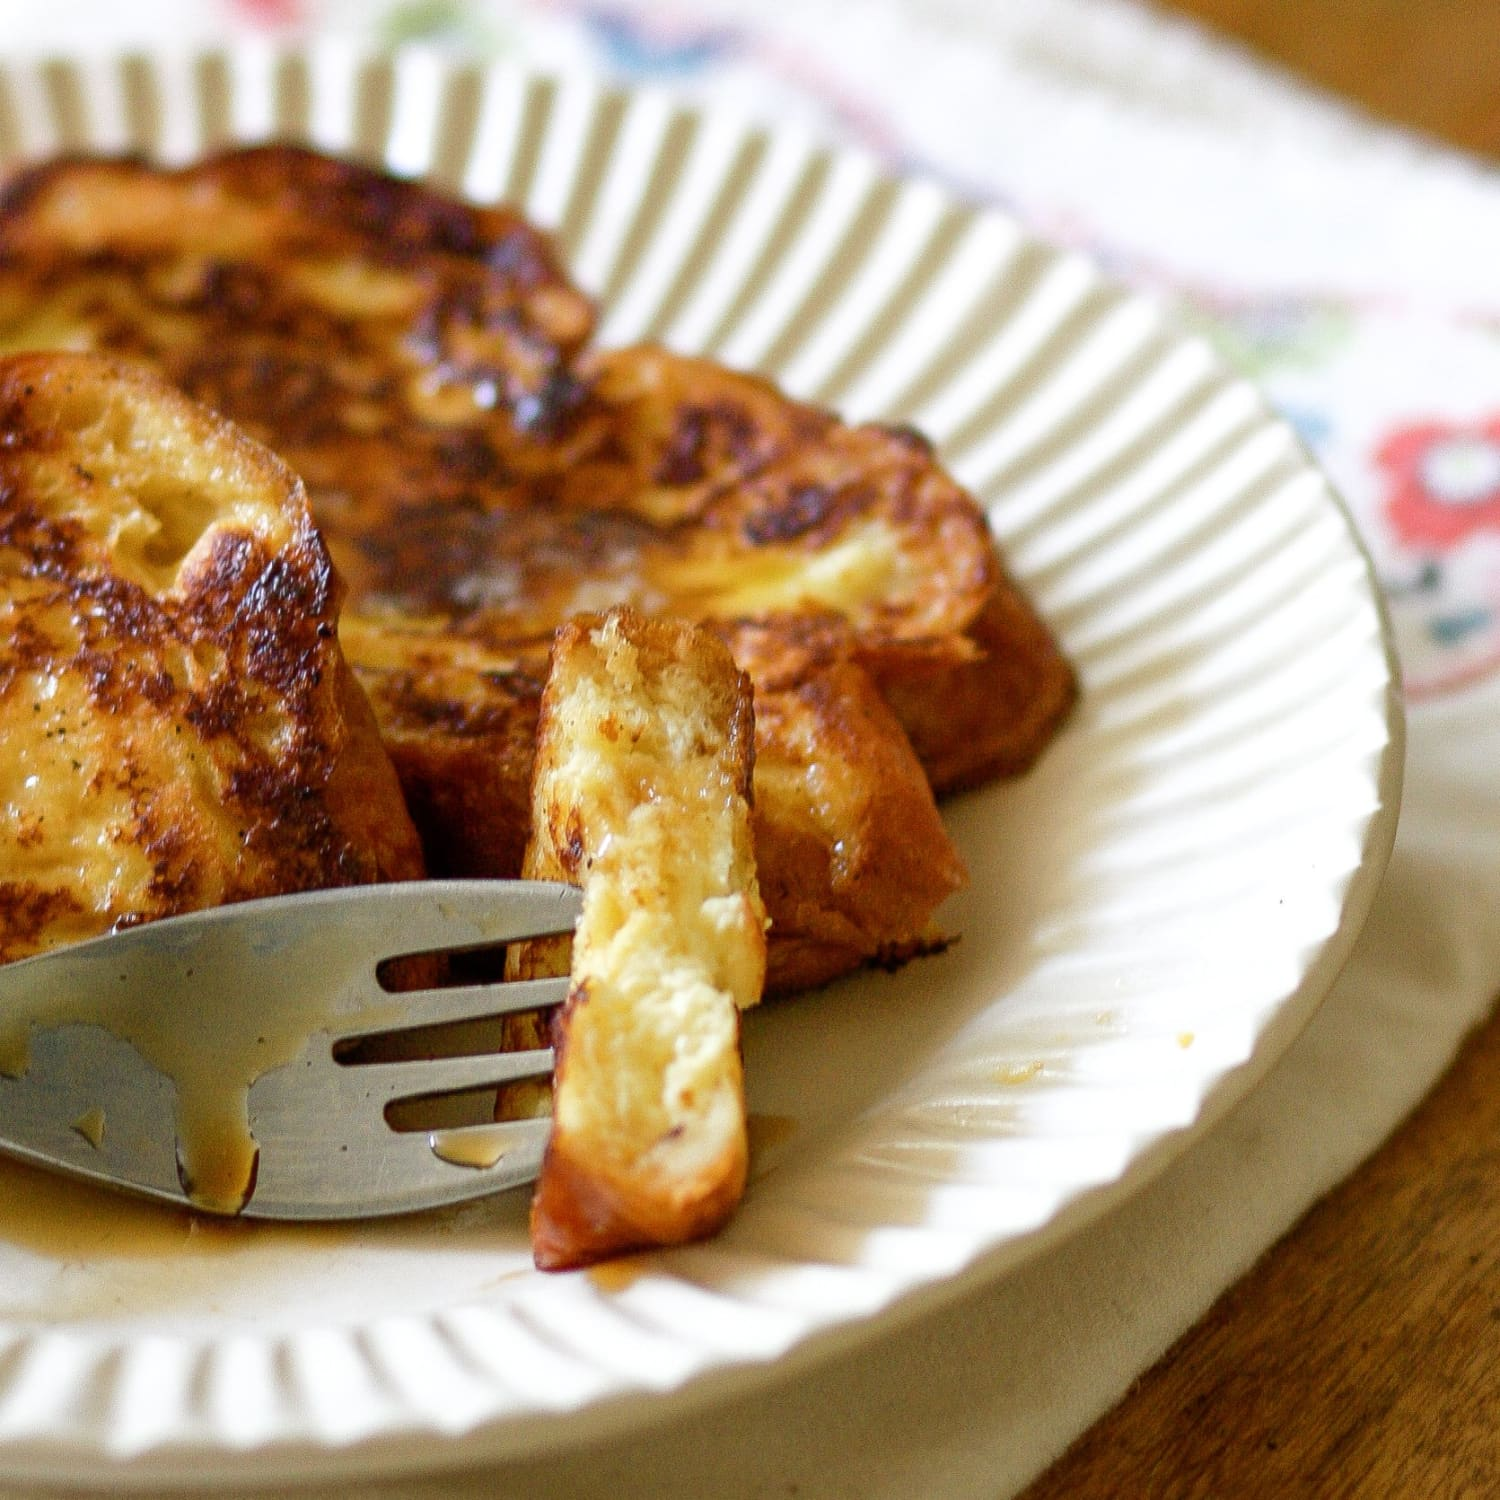 How To Make Great French Toast